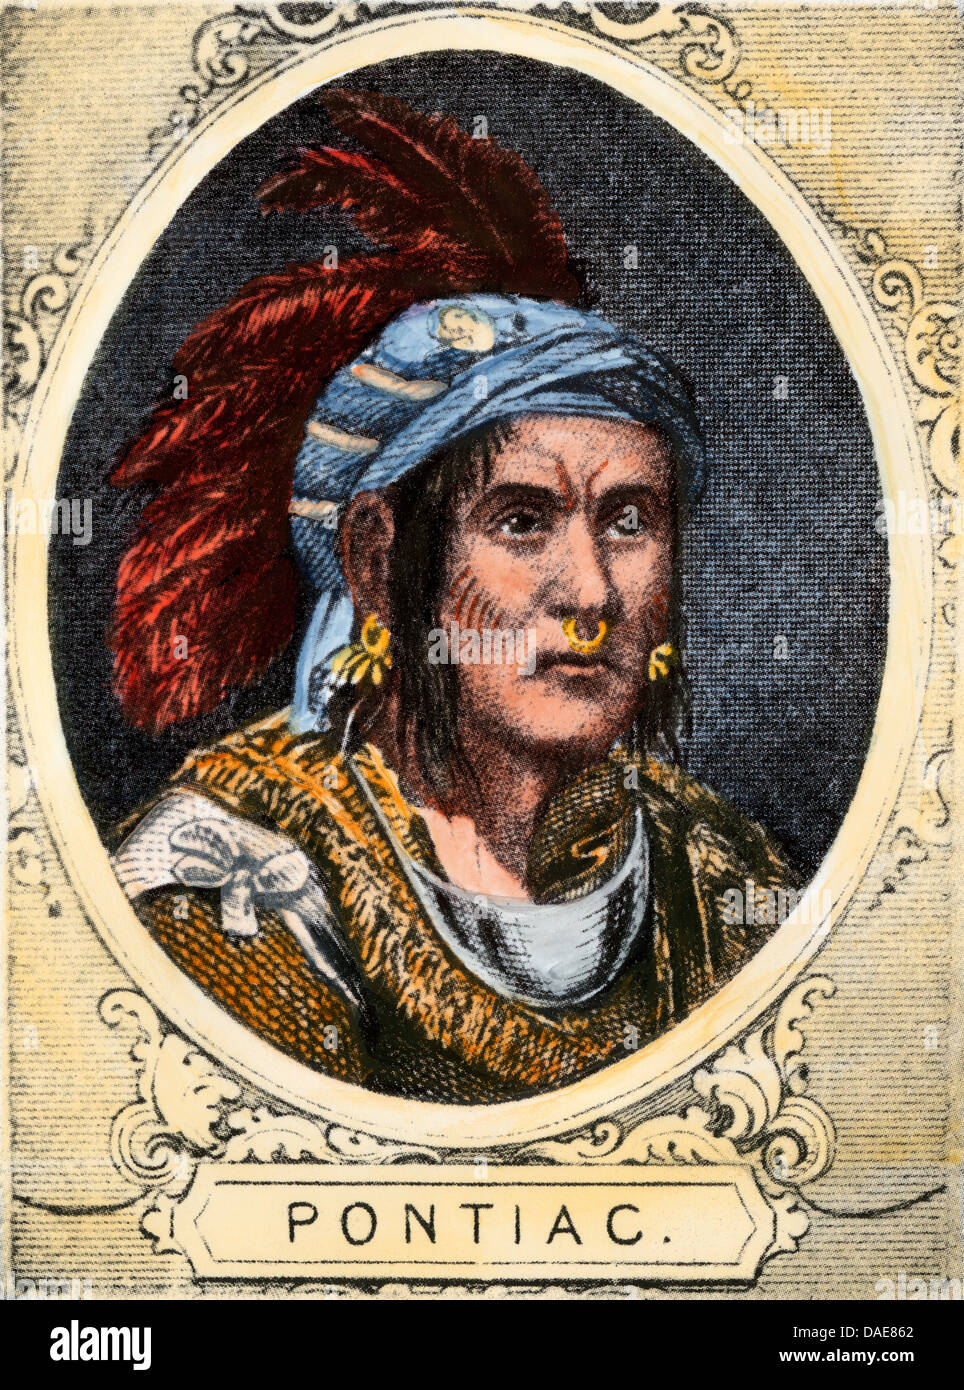 Chief Pontiac of the Ottawa nation. Hand-colored woodcut - Stock Image